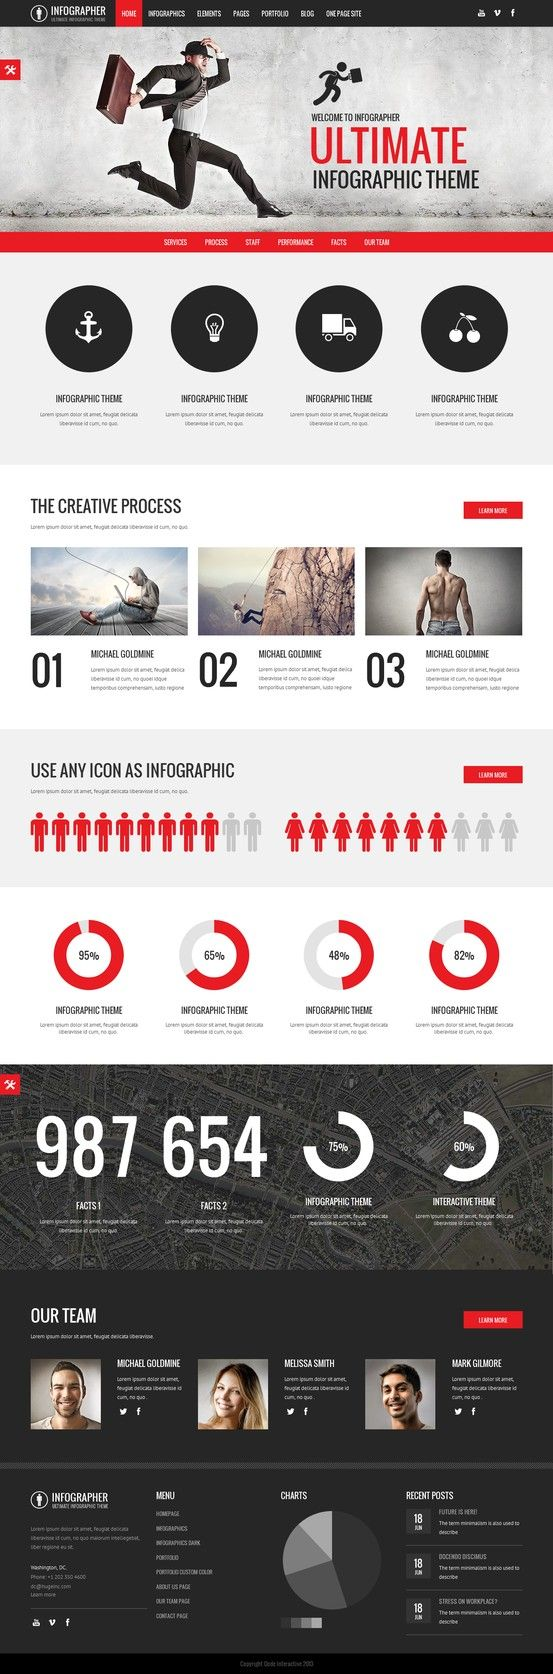 Infographer - Multi-Purpose Infographic Theme http://themeforest.net/item/infographer-multipurpose-infographic-theme/5027304?ref=wpaw #web #design #wordpress